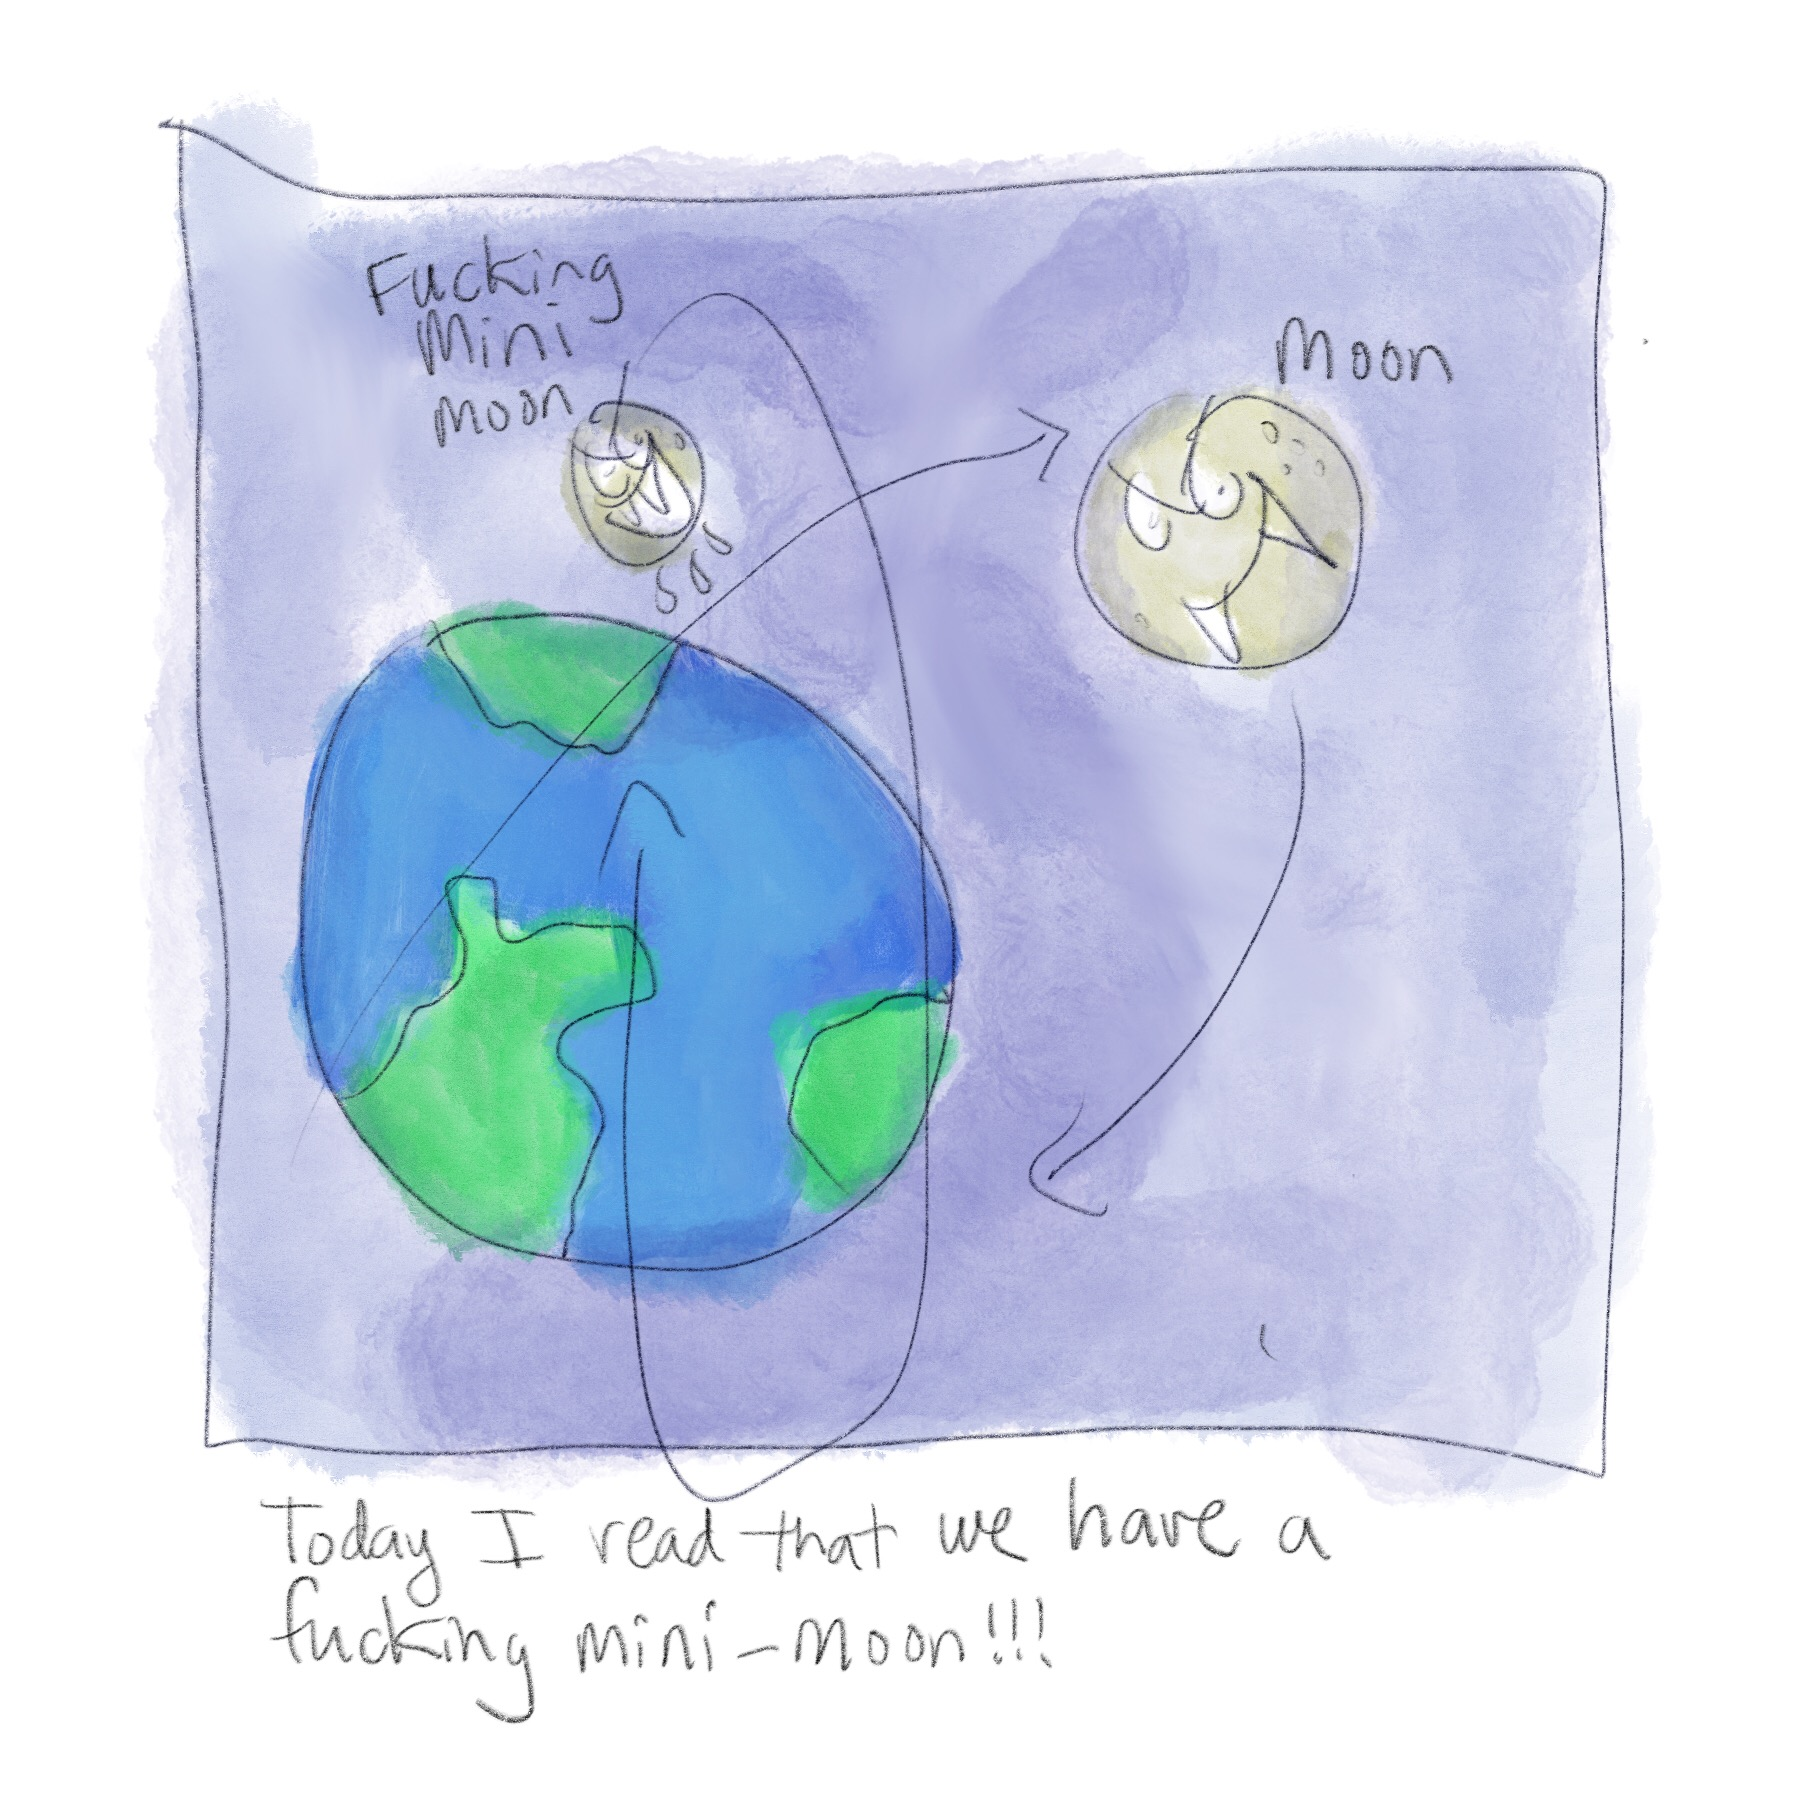 We have a mini moon orbiting earth!